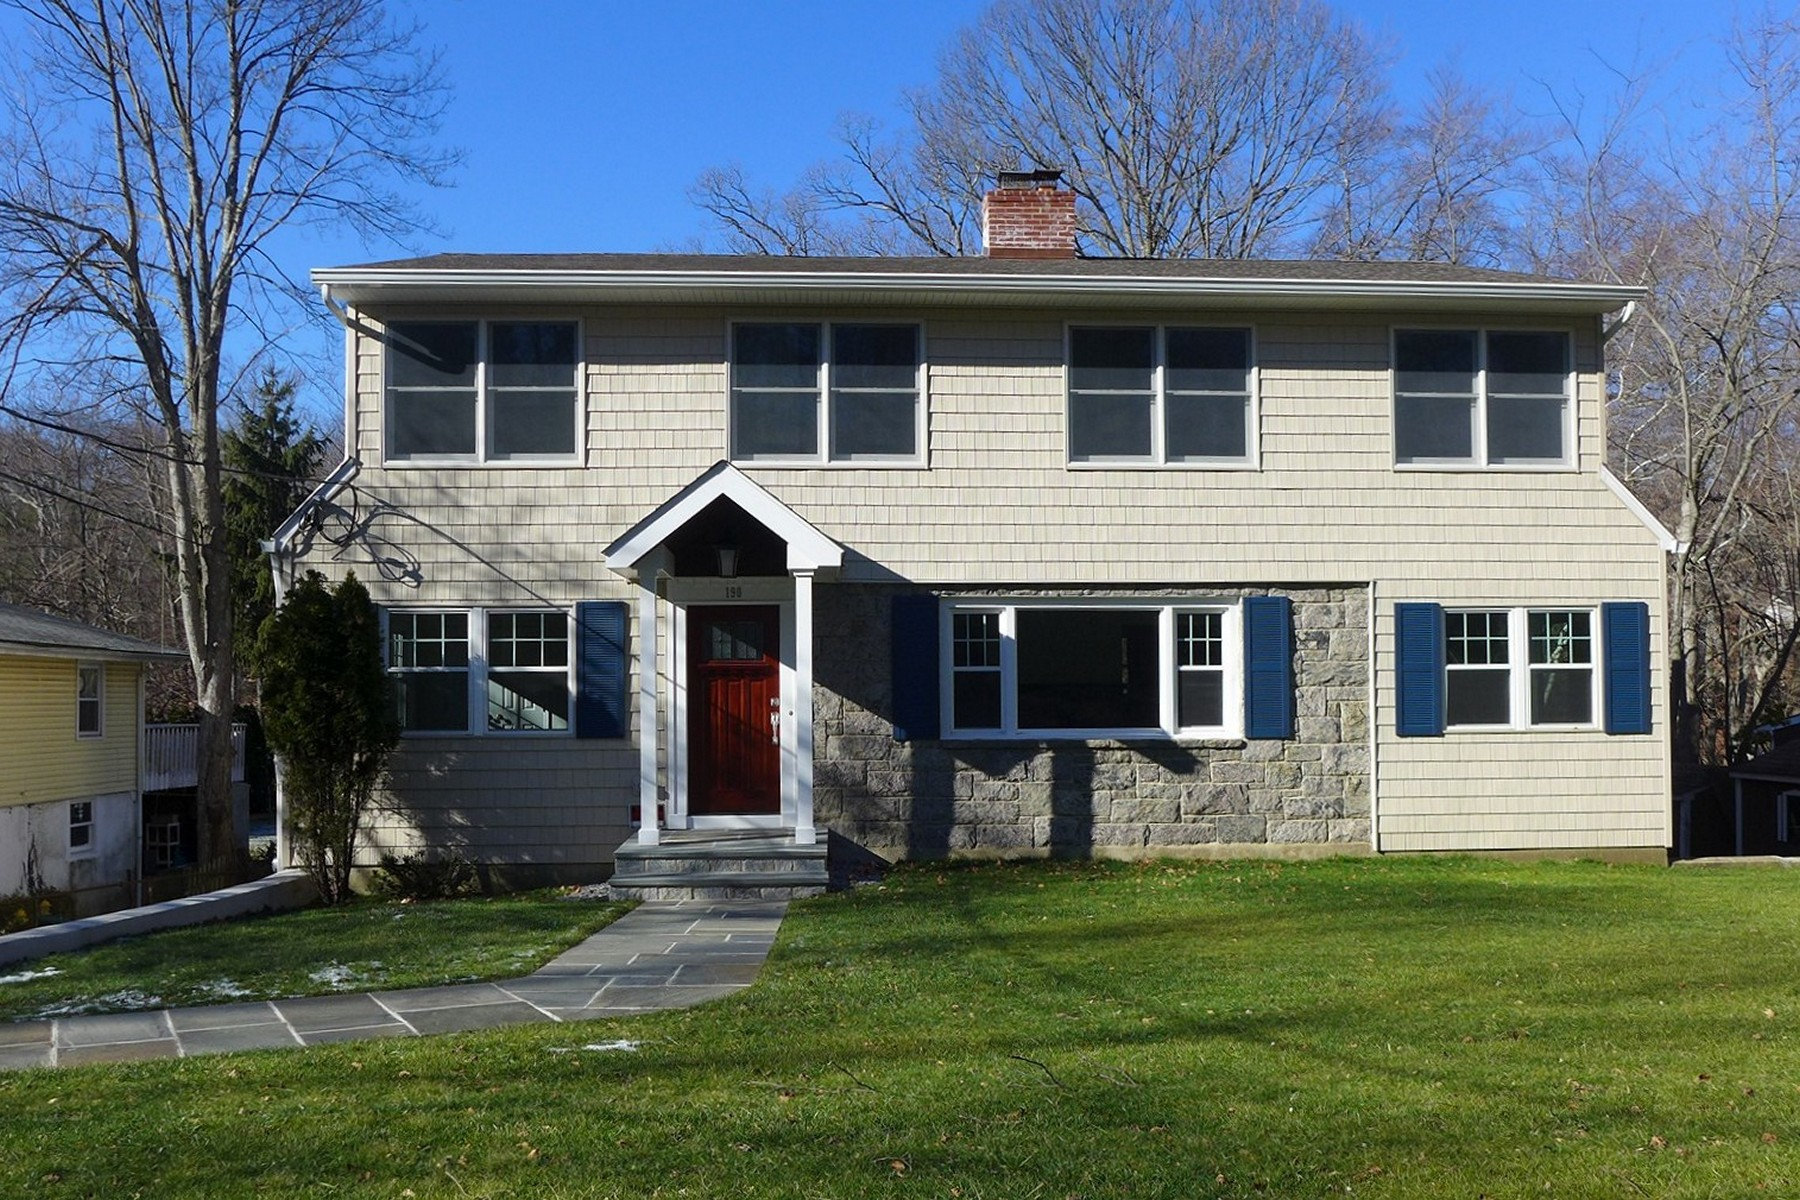 Single Family Home for Sale at Sun Filled Lake Views 190 Lake Shore Drive Pleasantville, New York 10570 United States